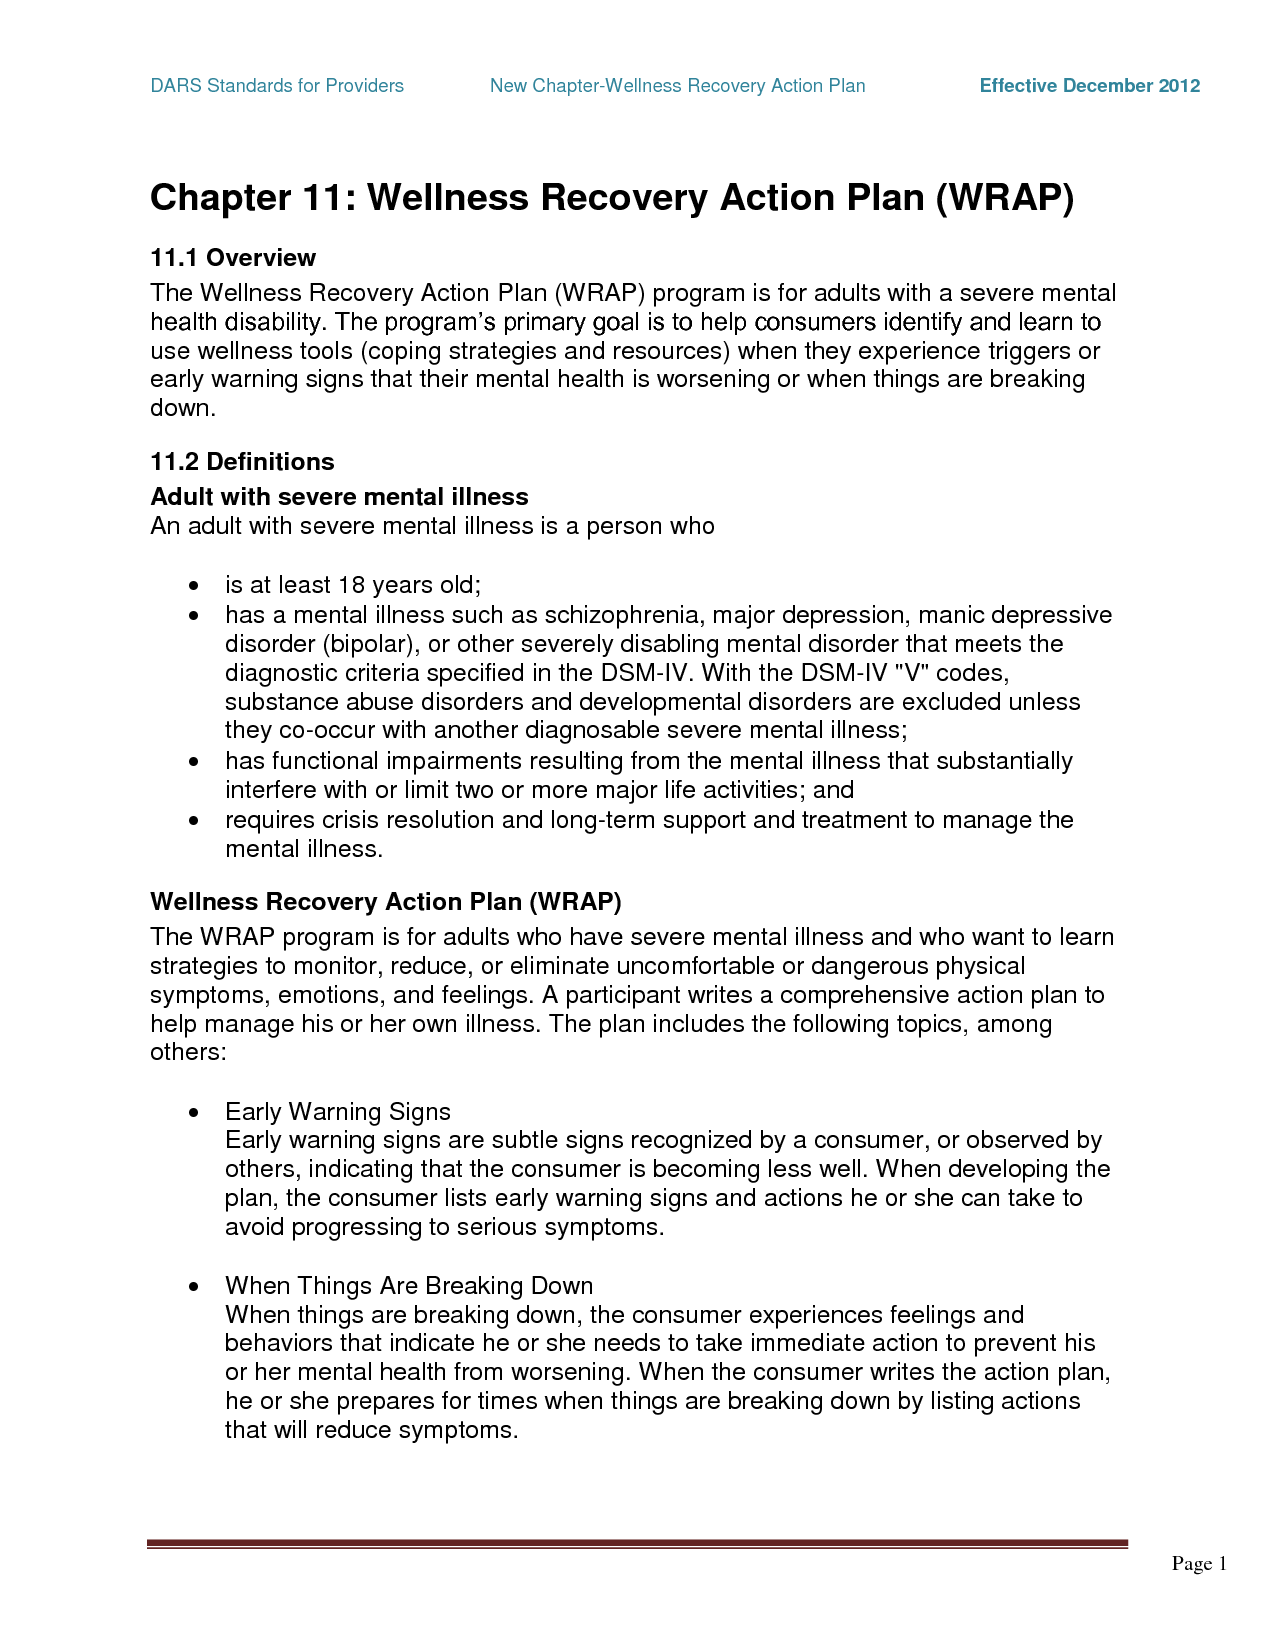 Wrap Mental Health  Chapter  Wellness Recovery Action Plan